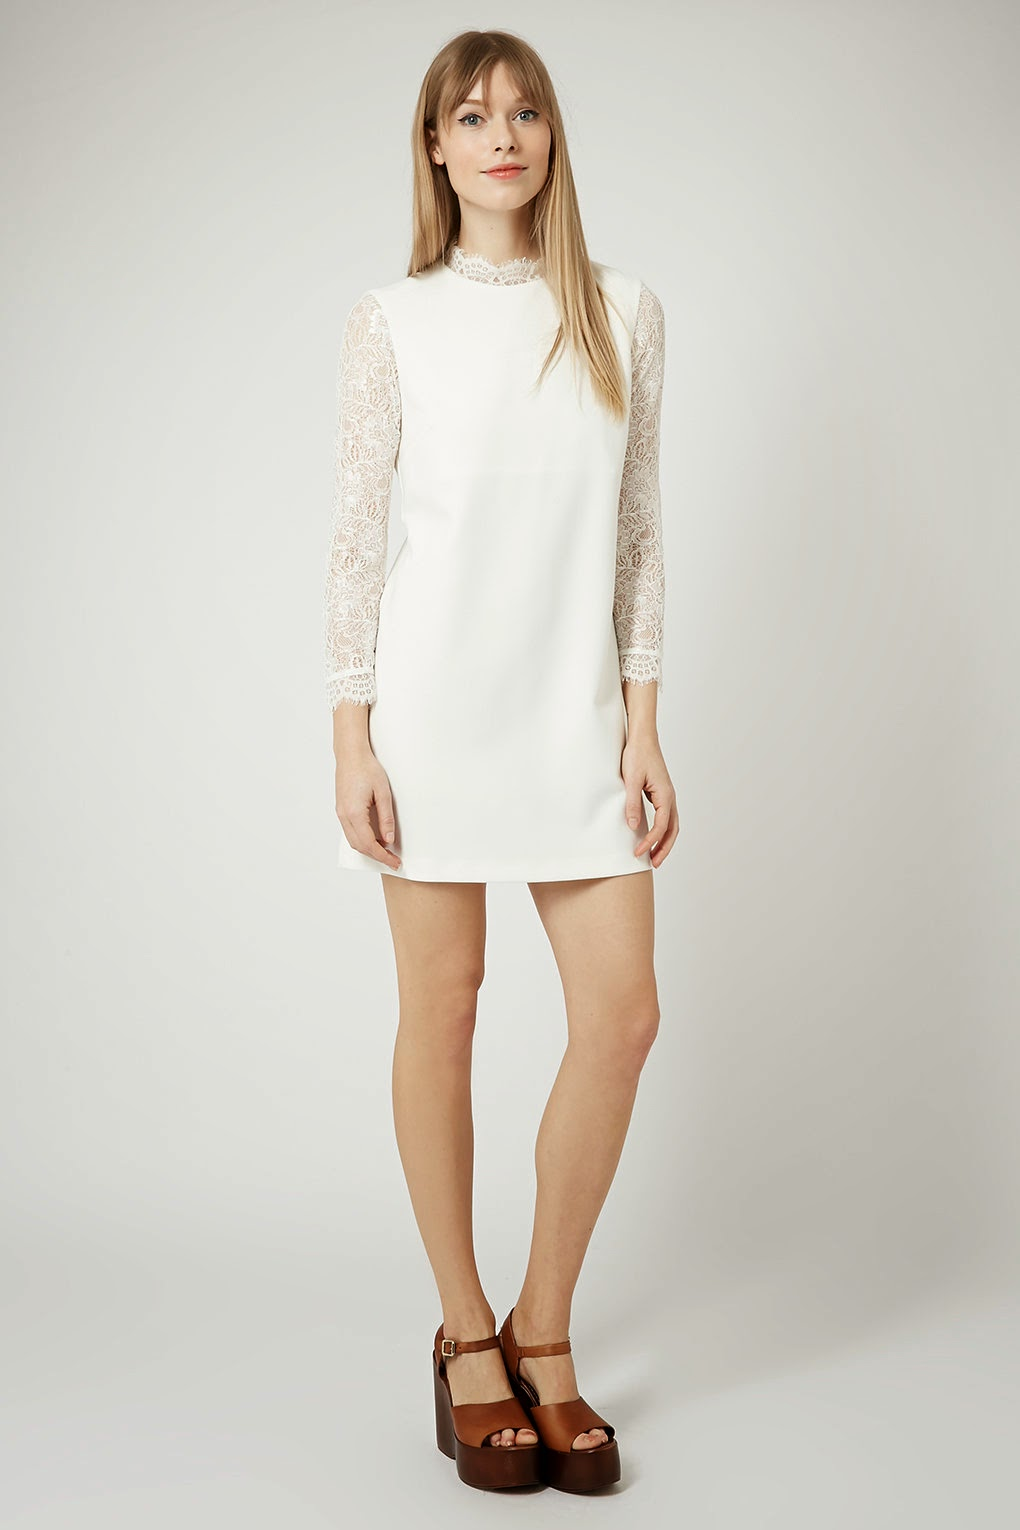 high neck white dress,